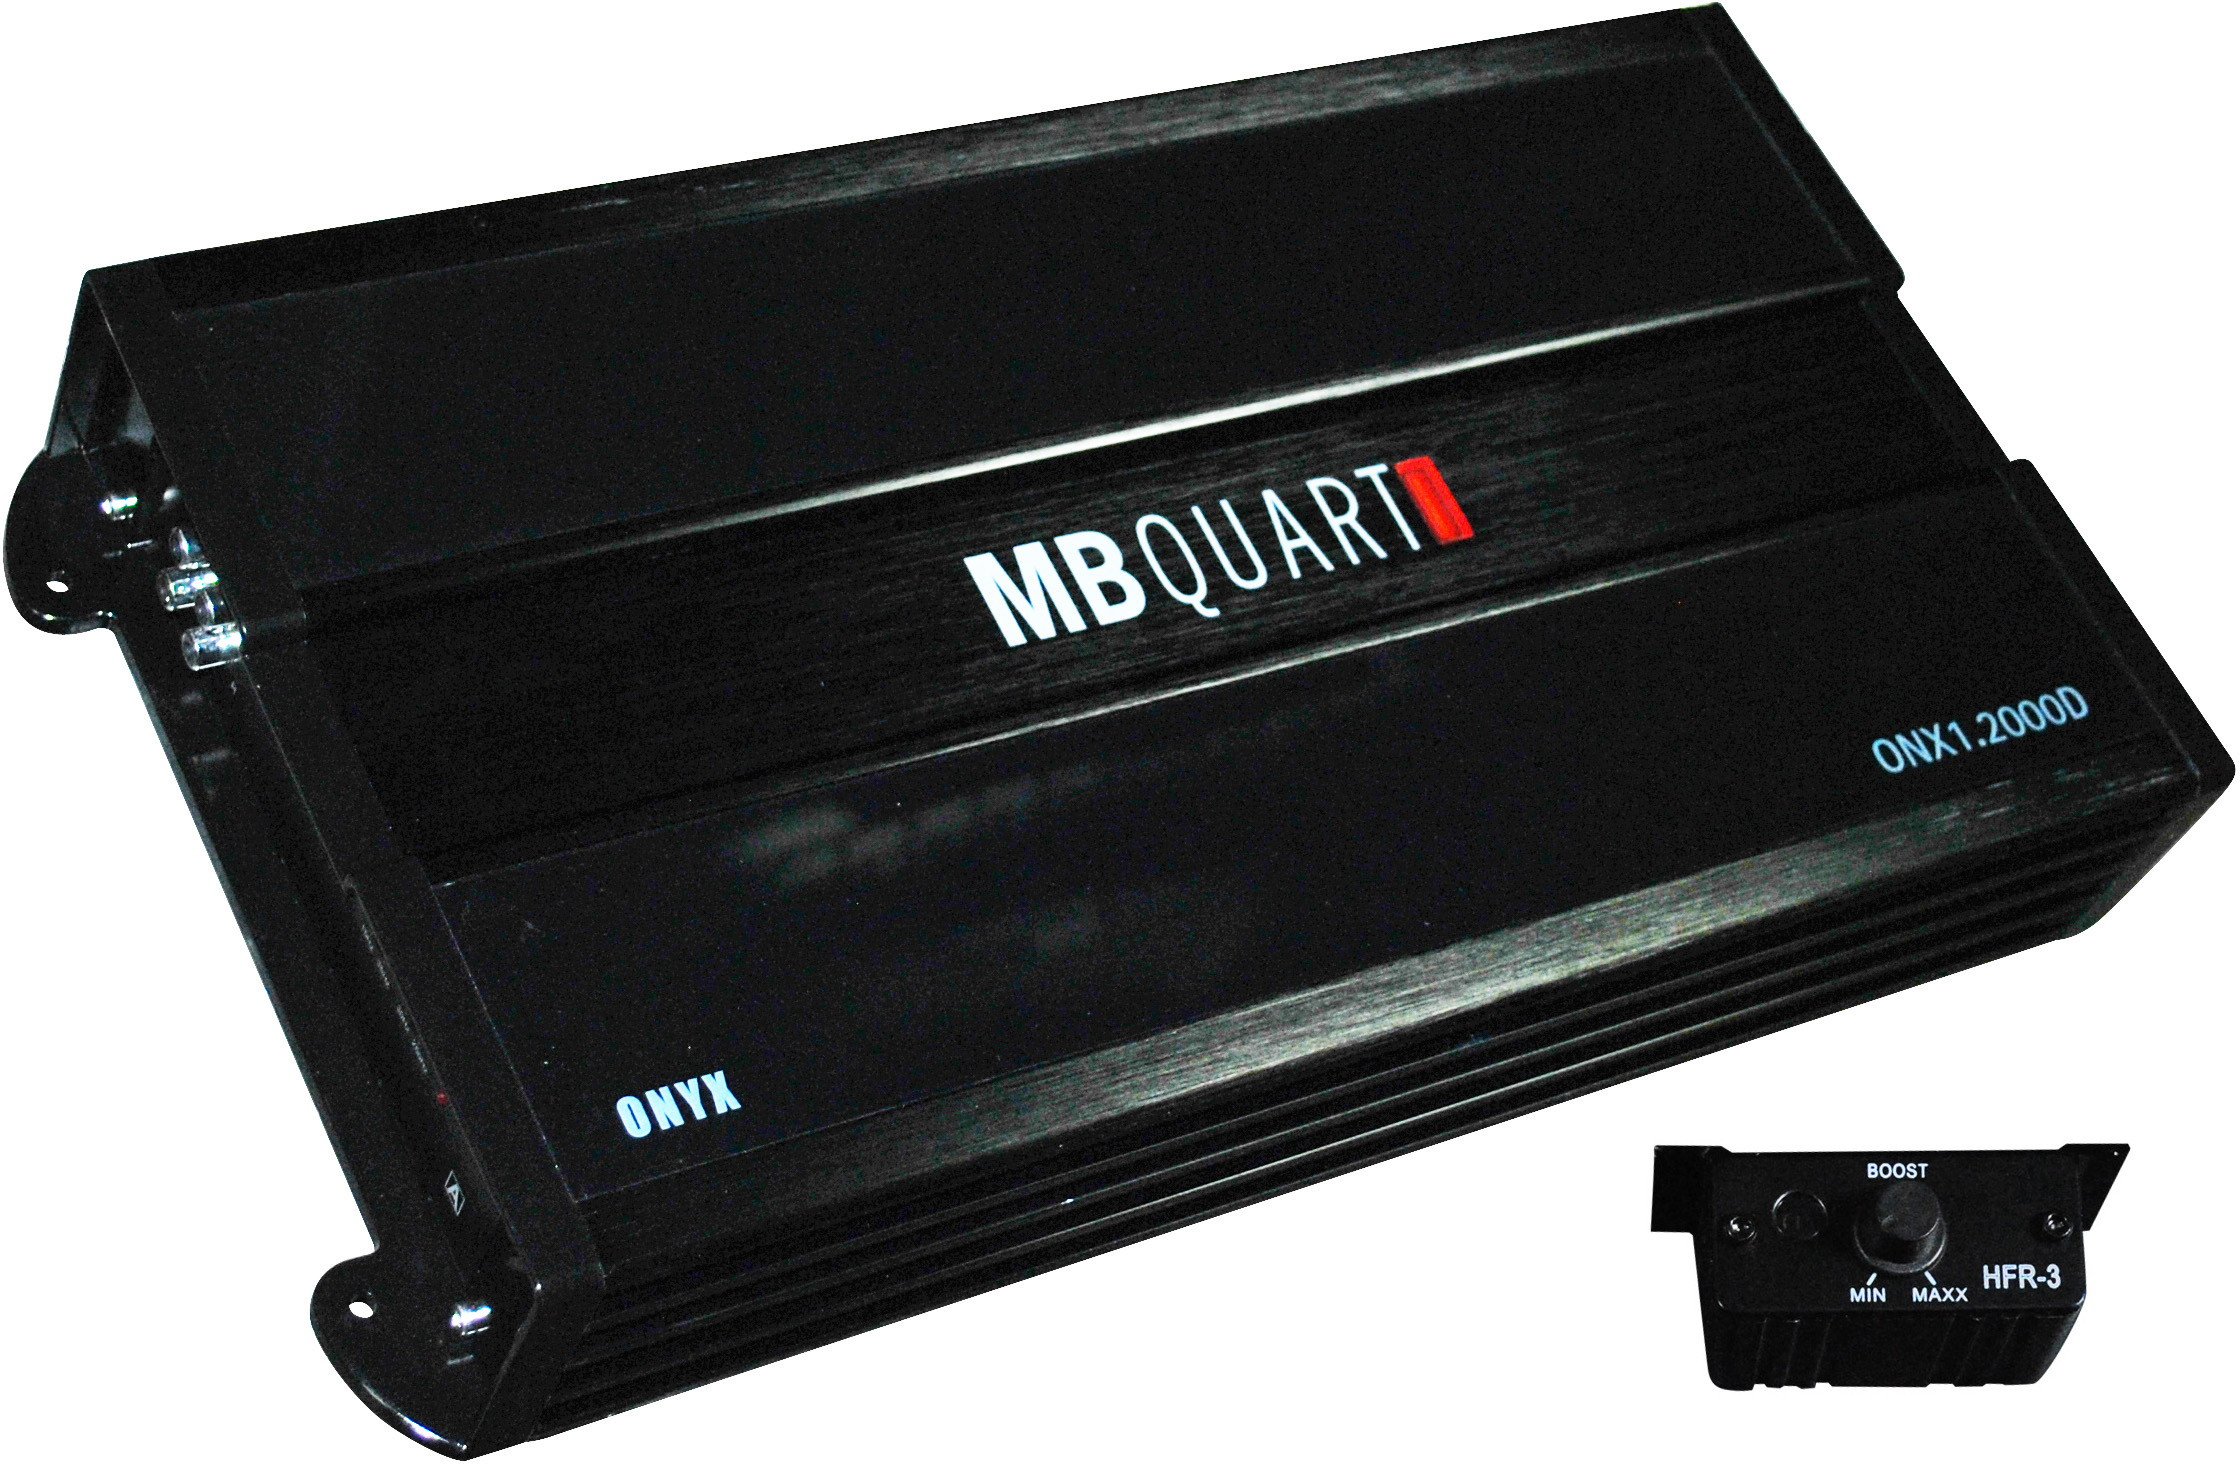 Buy MB Quart Amplifiers - Mb Quart Onx12000d 2000W Class D Monoblock Amplifier Amp